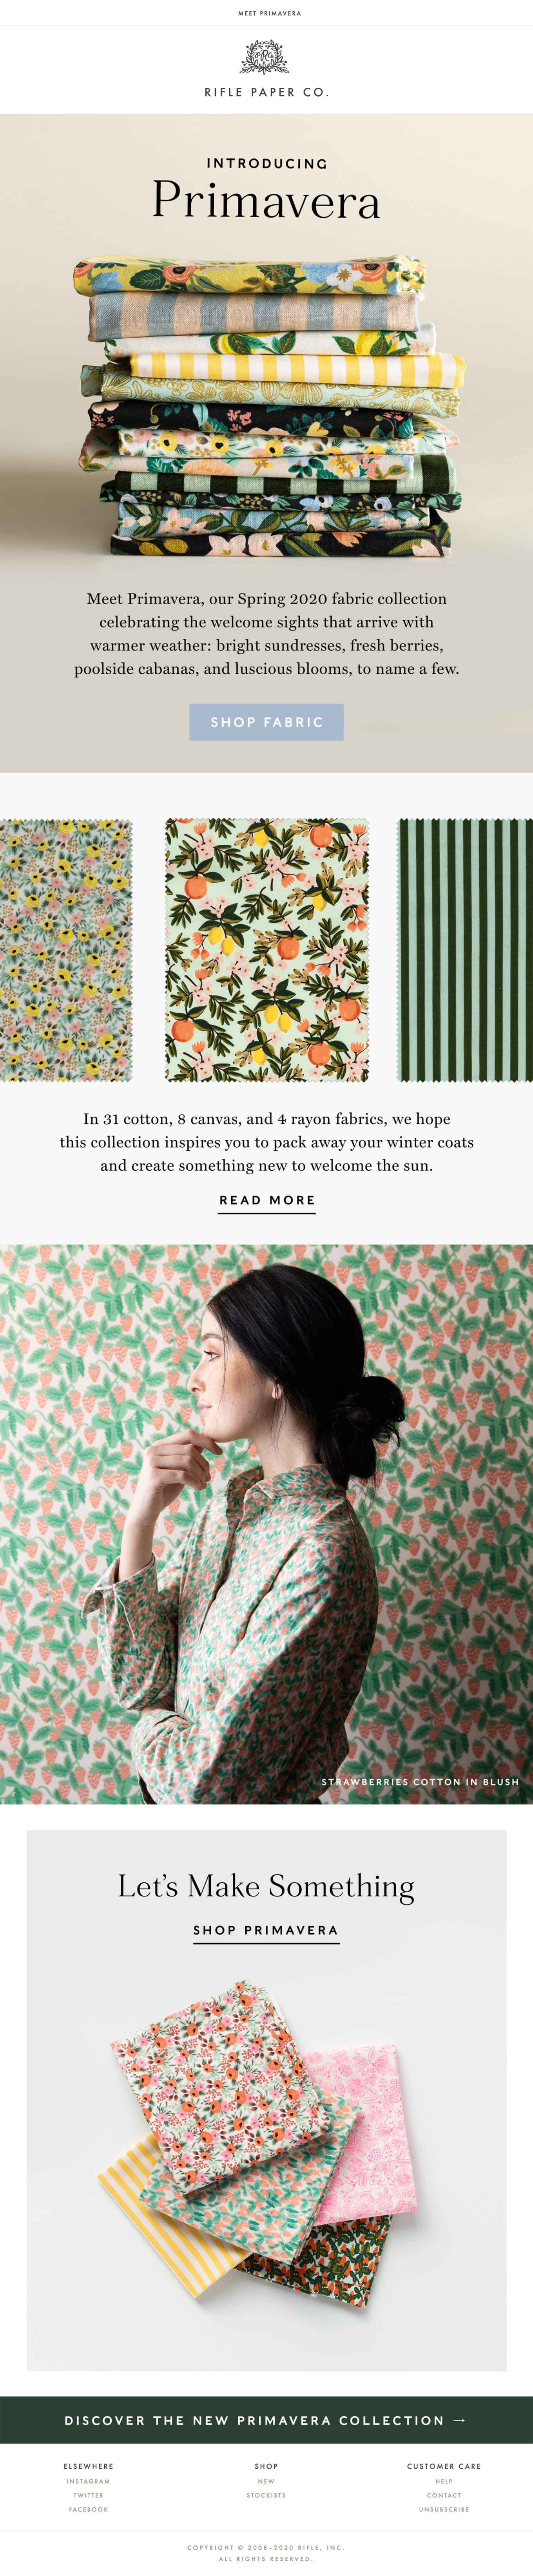 New Spring Fabric is Here! Email Screenshot